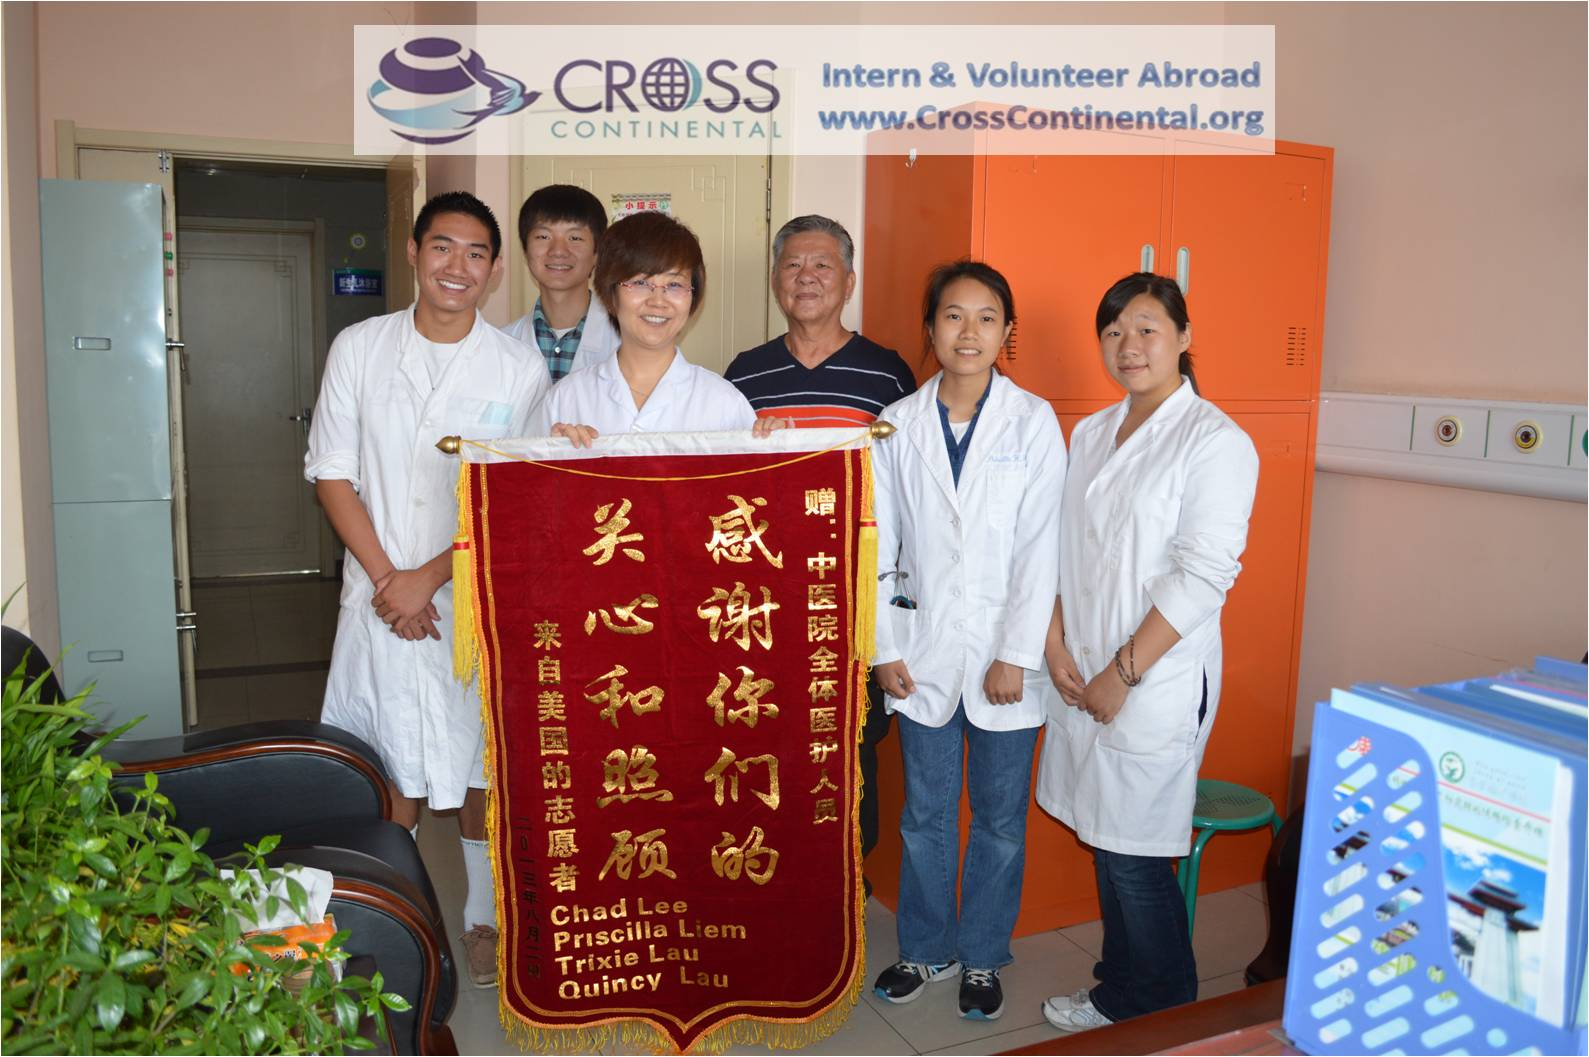 international internships and volunteer abroad Asia-China-117-intern abroad-healthcare volunteer work, medical internships, zhangjiakou-2013